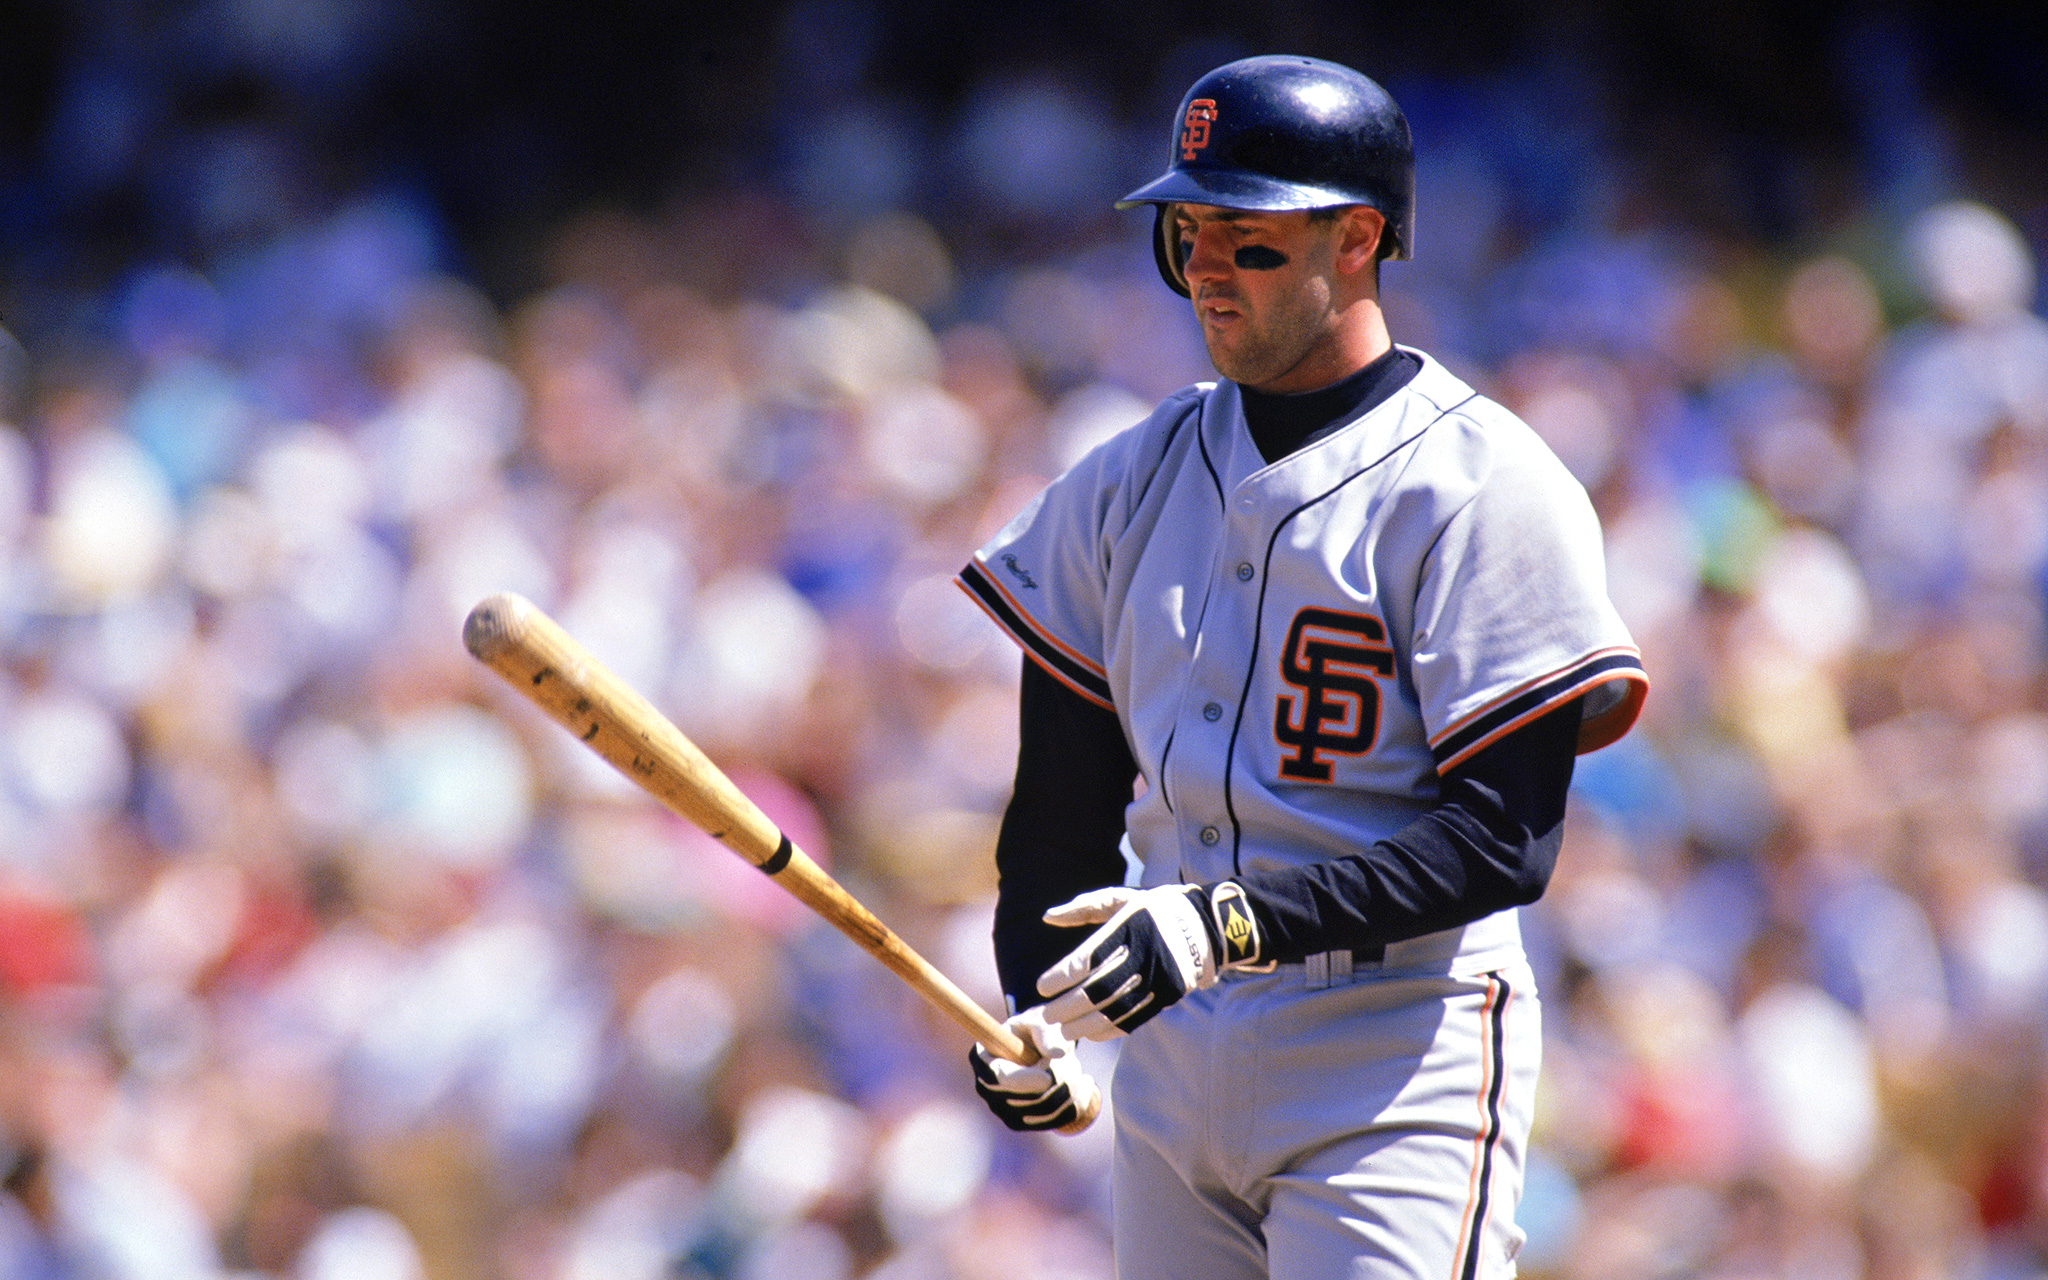 Giants: Road grays of 1980s